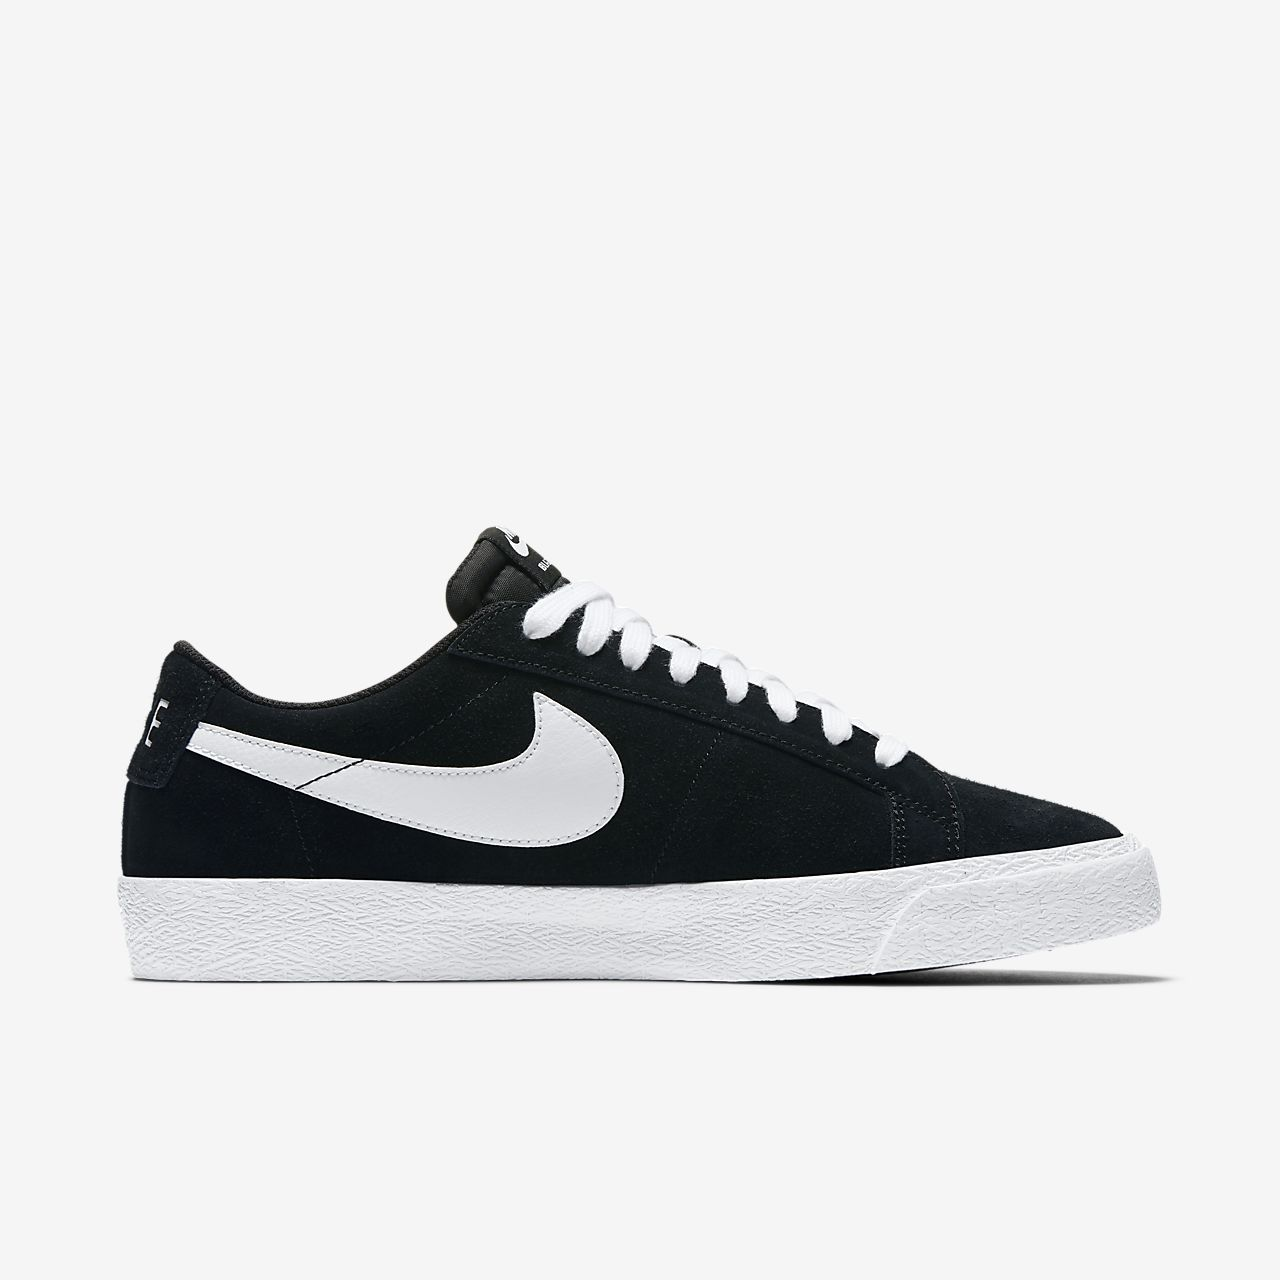 bd86f1cd9ee Nike SB Blazer Zoom Low Men s Skateboarding Shoe. Nike.com